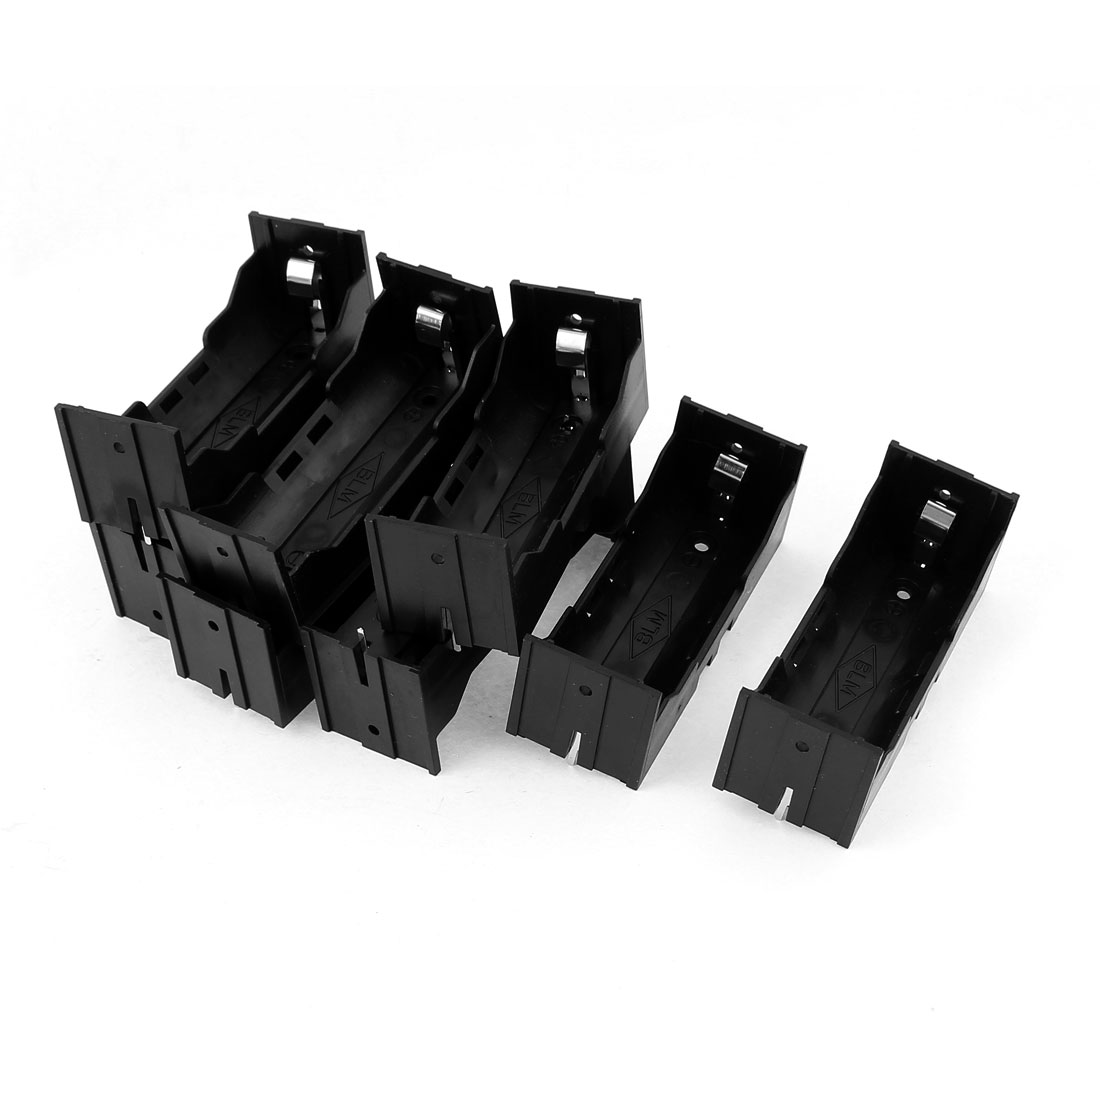 8Pcs Plastic Single 26650 Battery Holder Case Storage Box Black